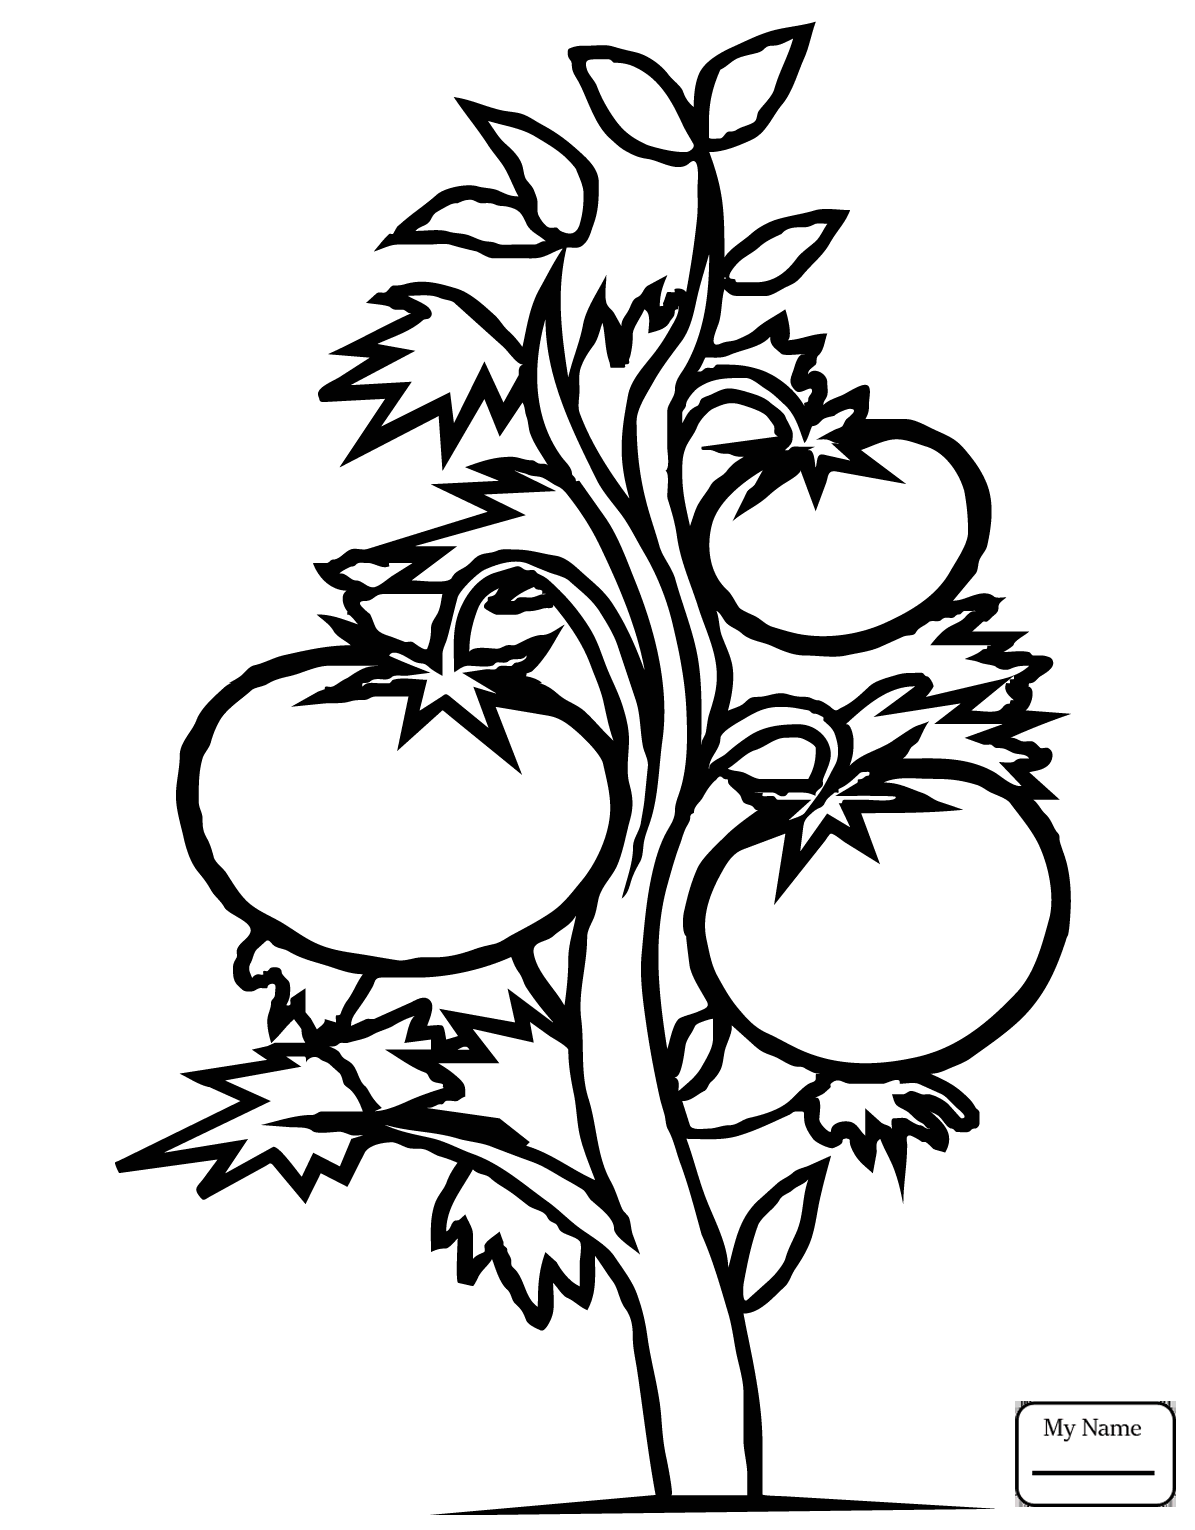 Tomato Plant Drawing At Getdrawings